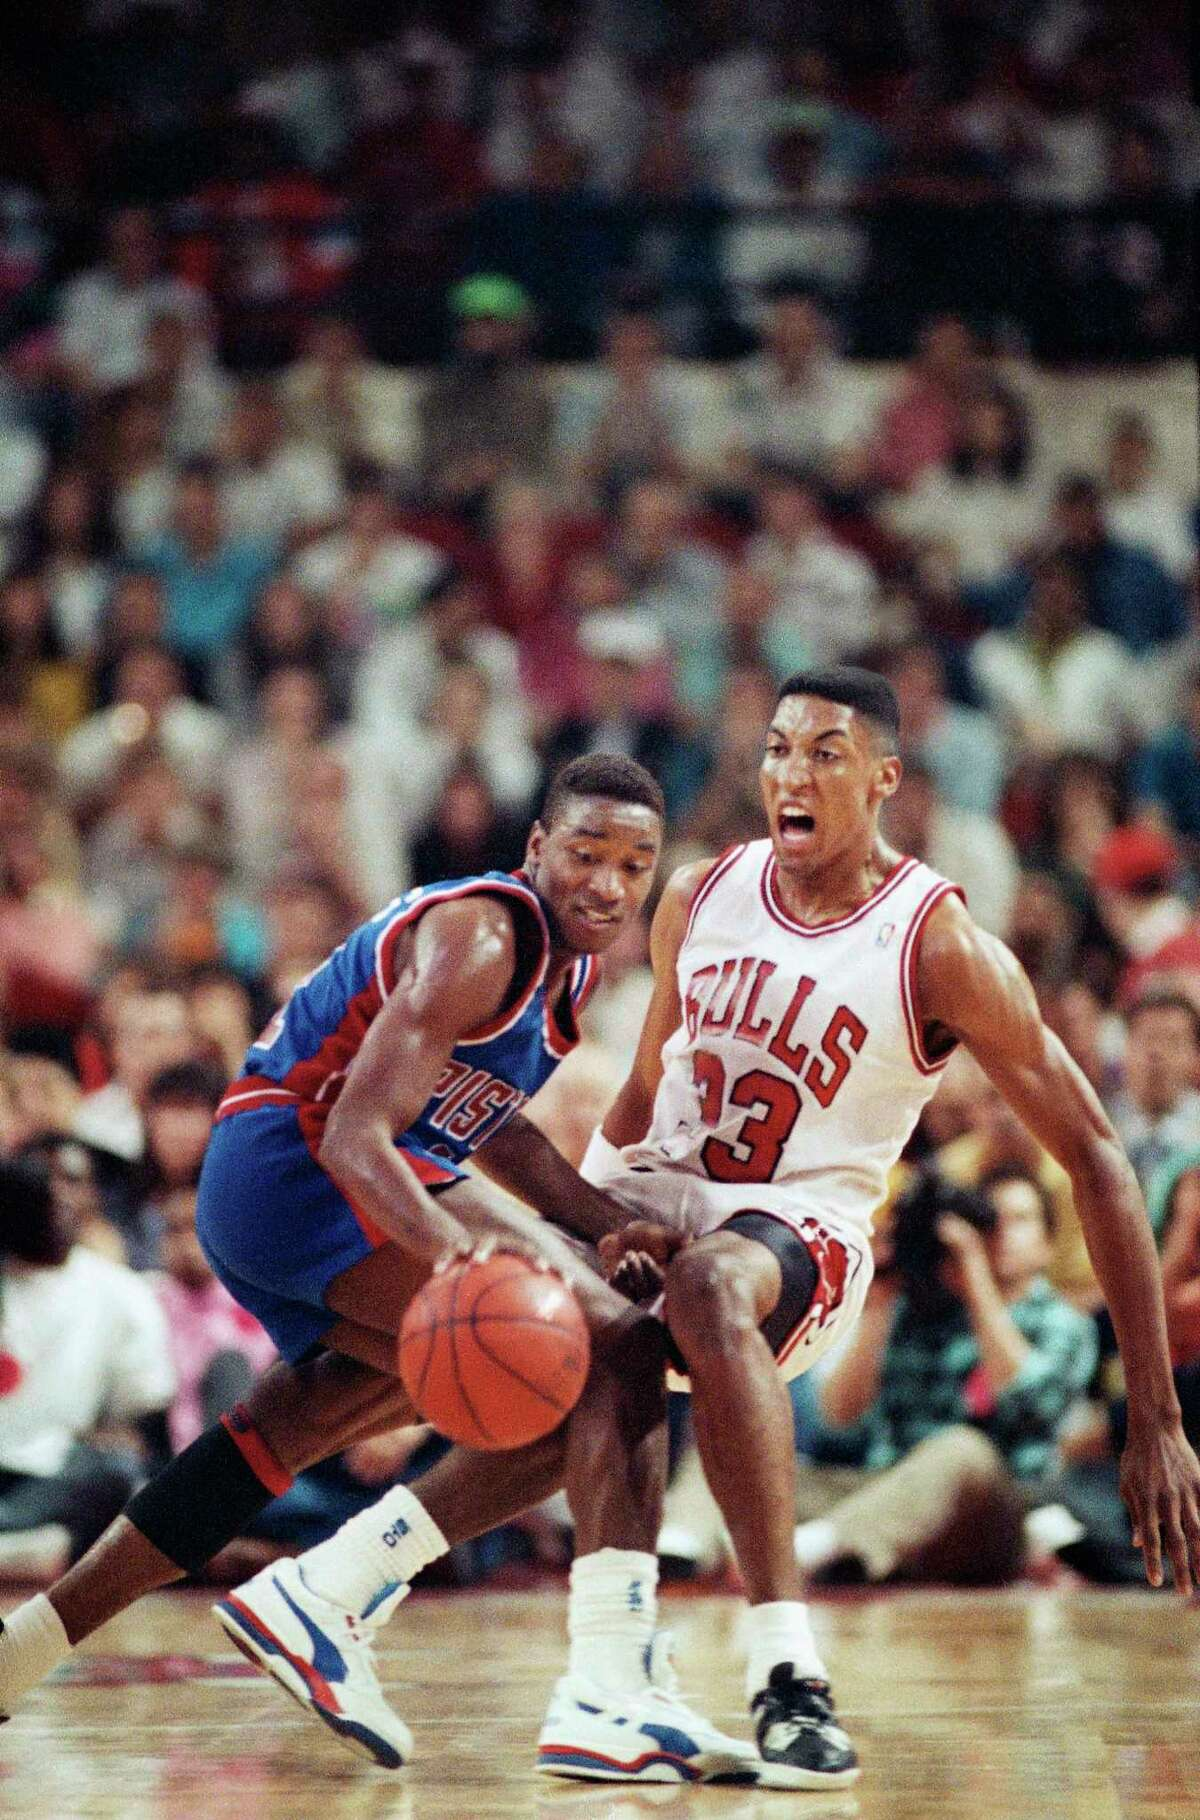 Chicago?s Scottie Pippen, right, heads for the floor as Detroit?s Isiah Thomas pushes off to grab a loose ball during the first quarter of Game 4 during the Eastern Conference finals in Chicago on Sunday, May 28, 1990. (AP Photo/Jim Mone)